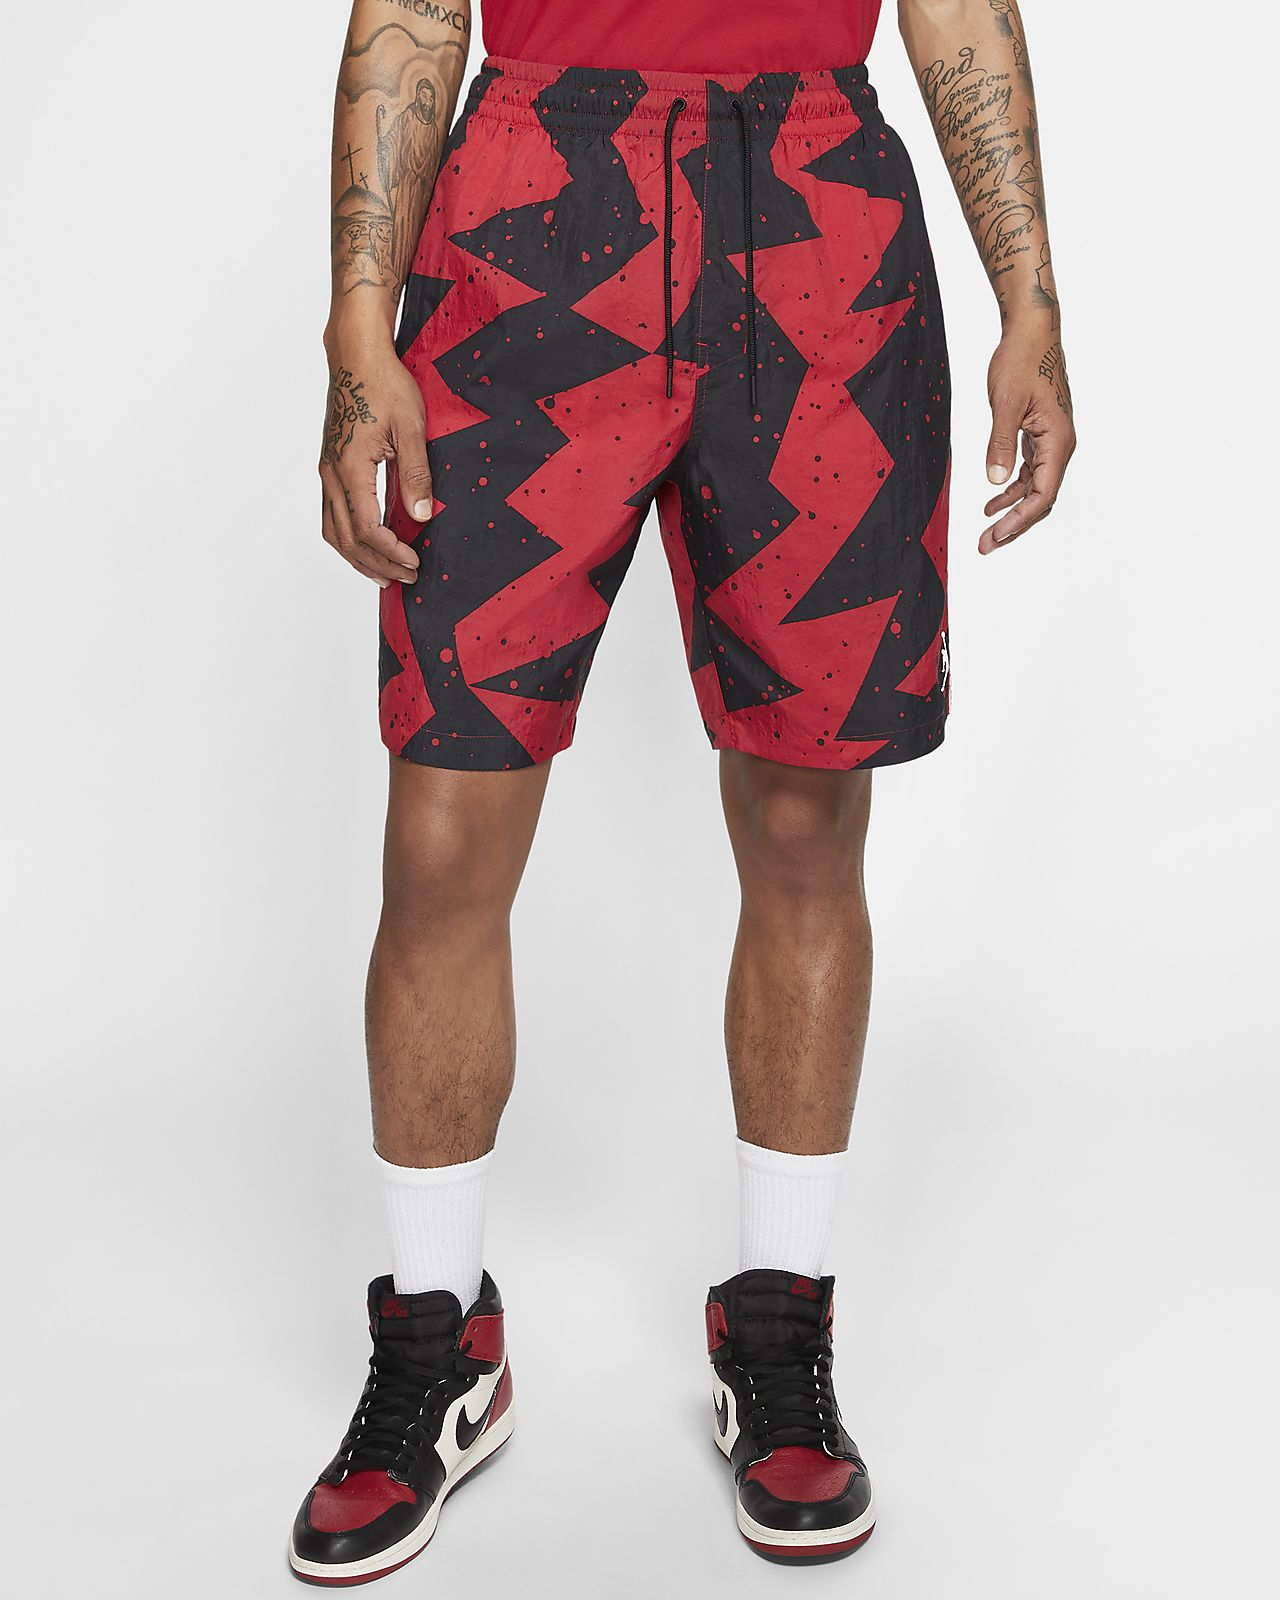 Jordan Jumpman Men's 23cm (approx.) Poolside Shorts